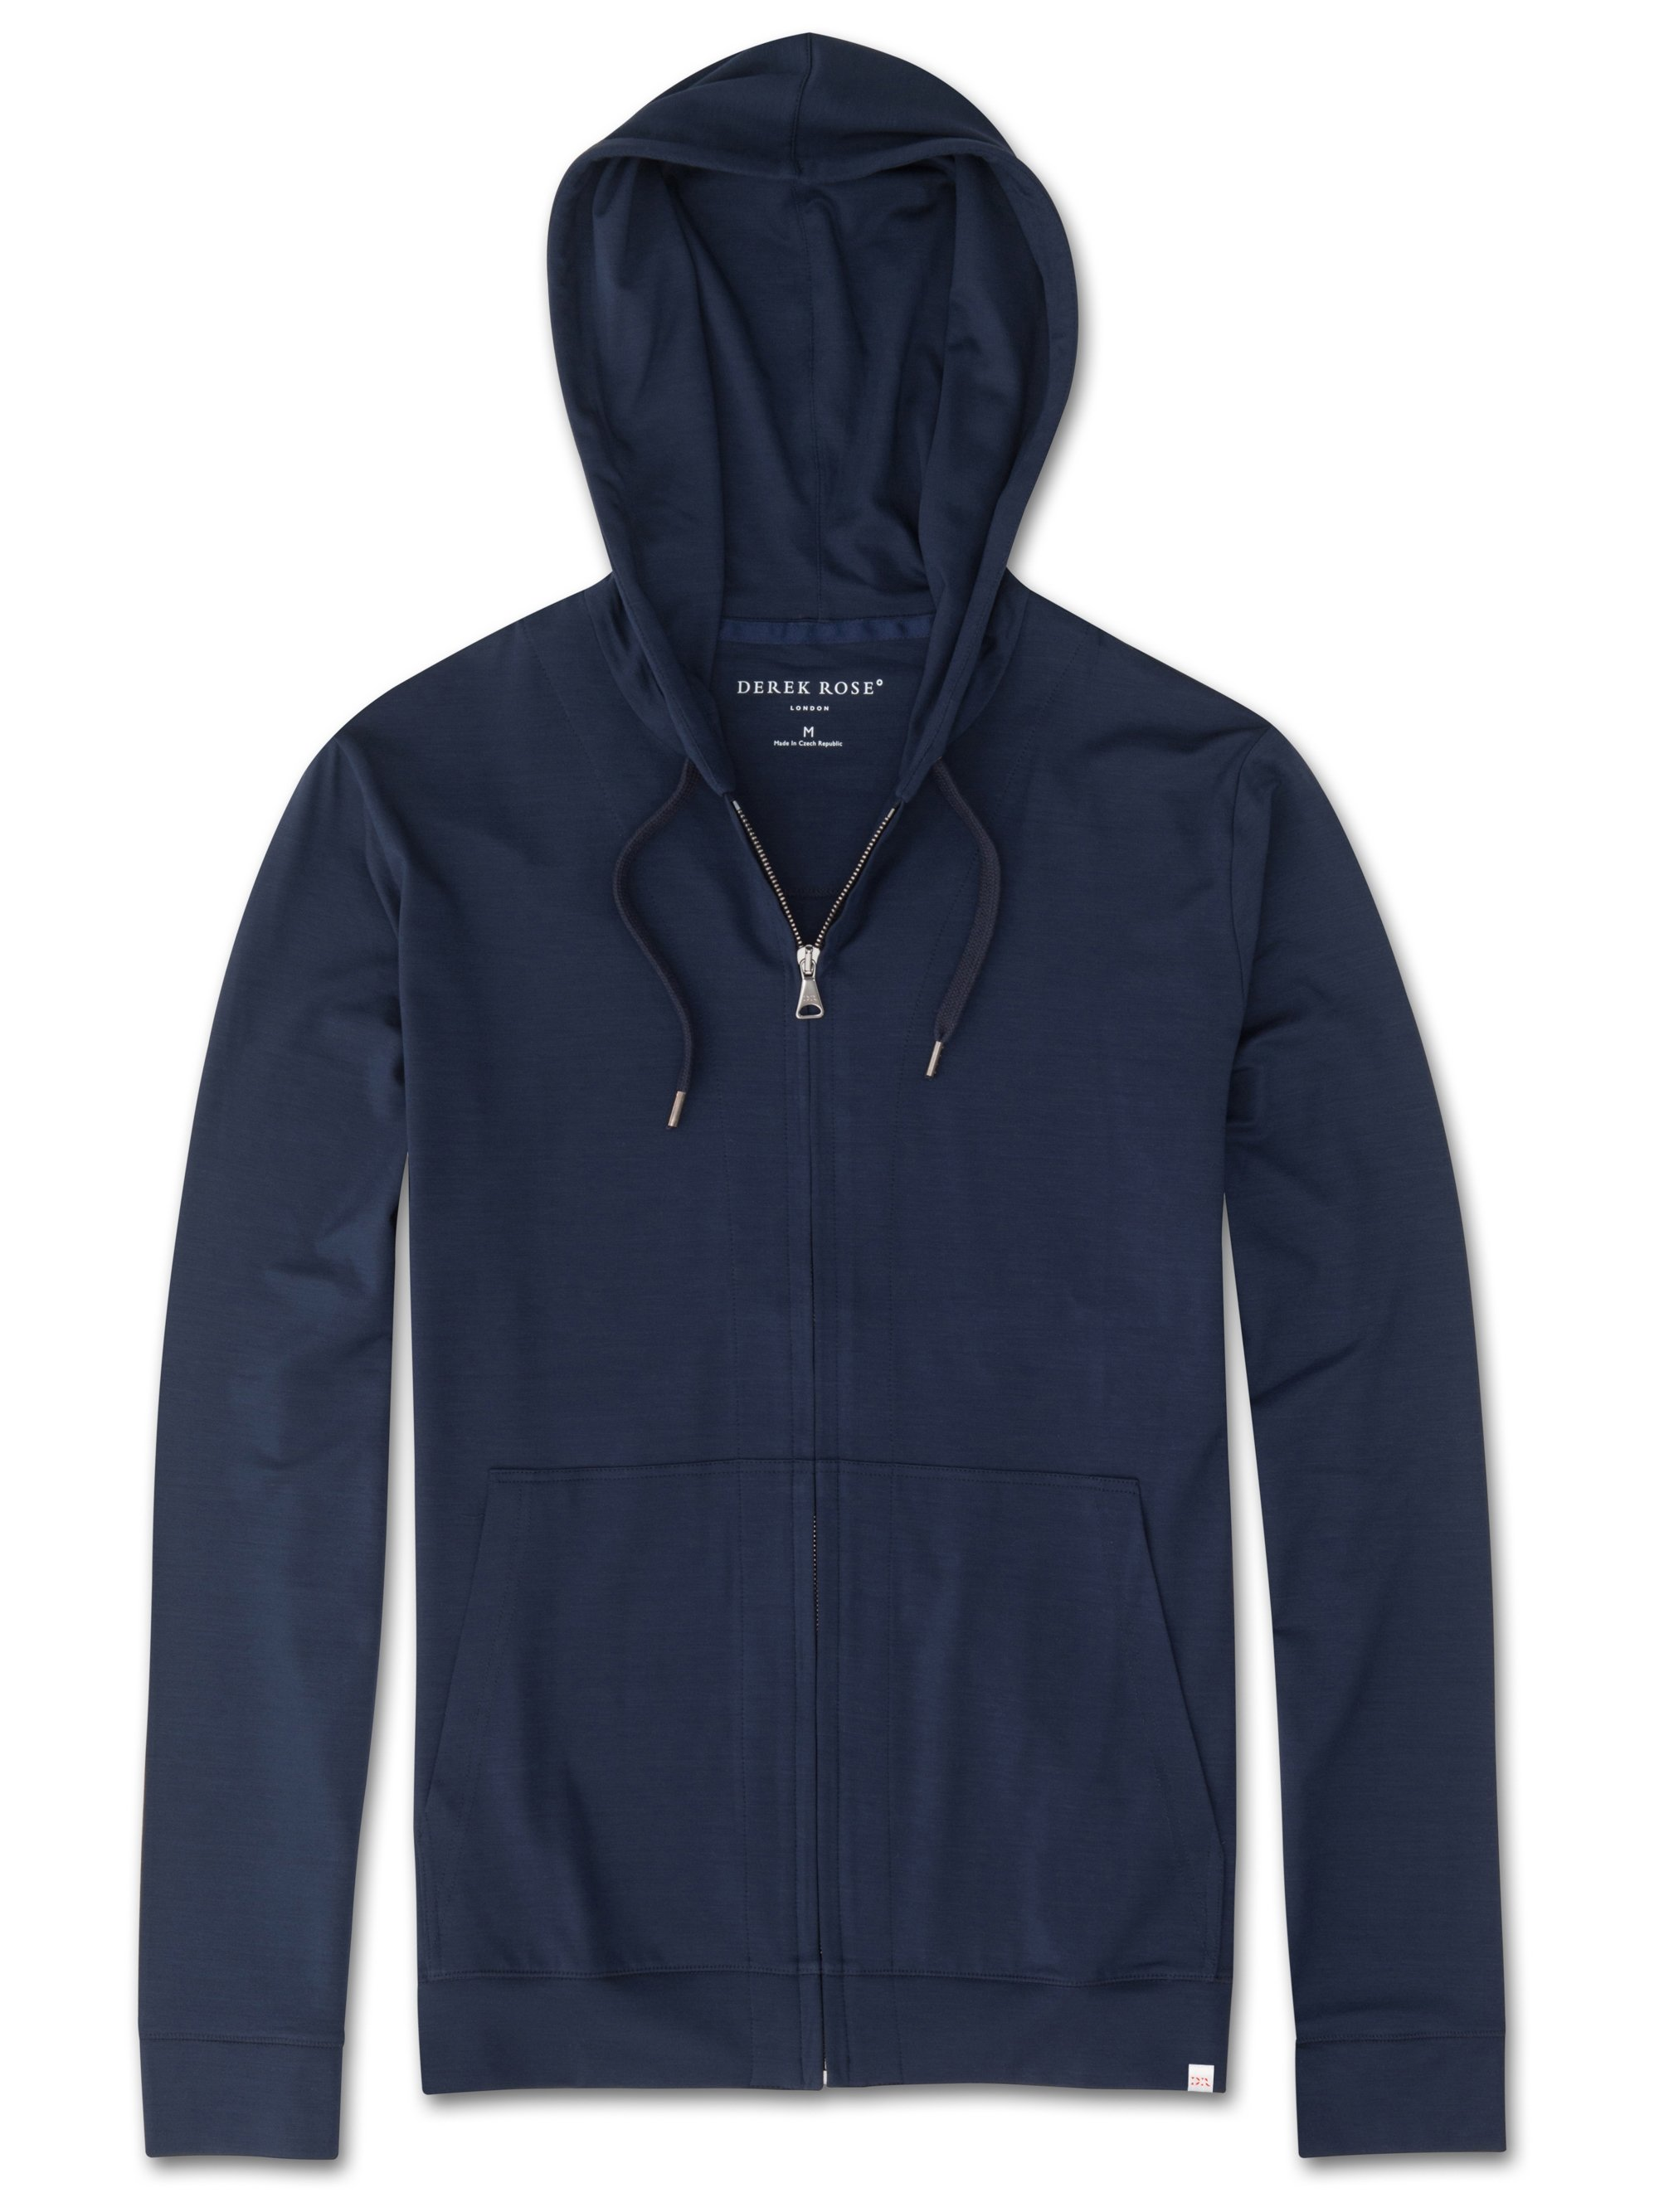 Men's Jersey Hoodie Basel Micro Modal Stretch Navy